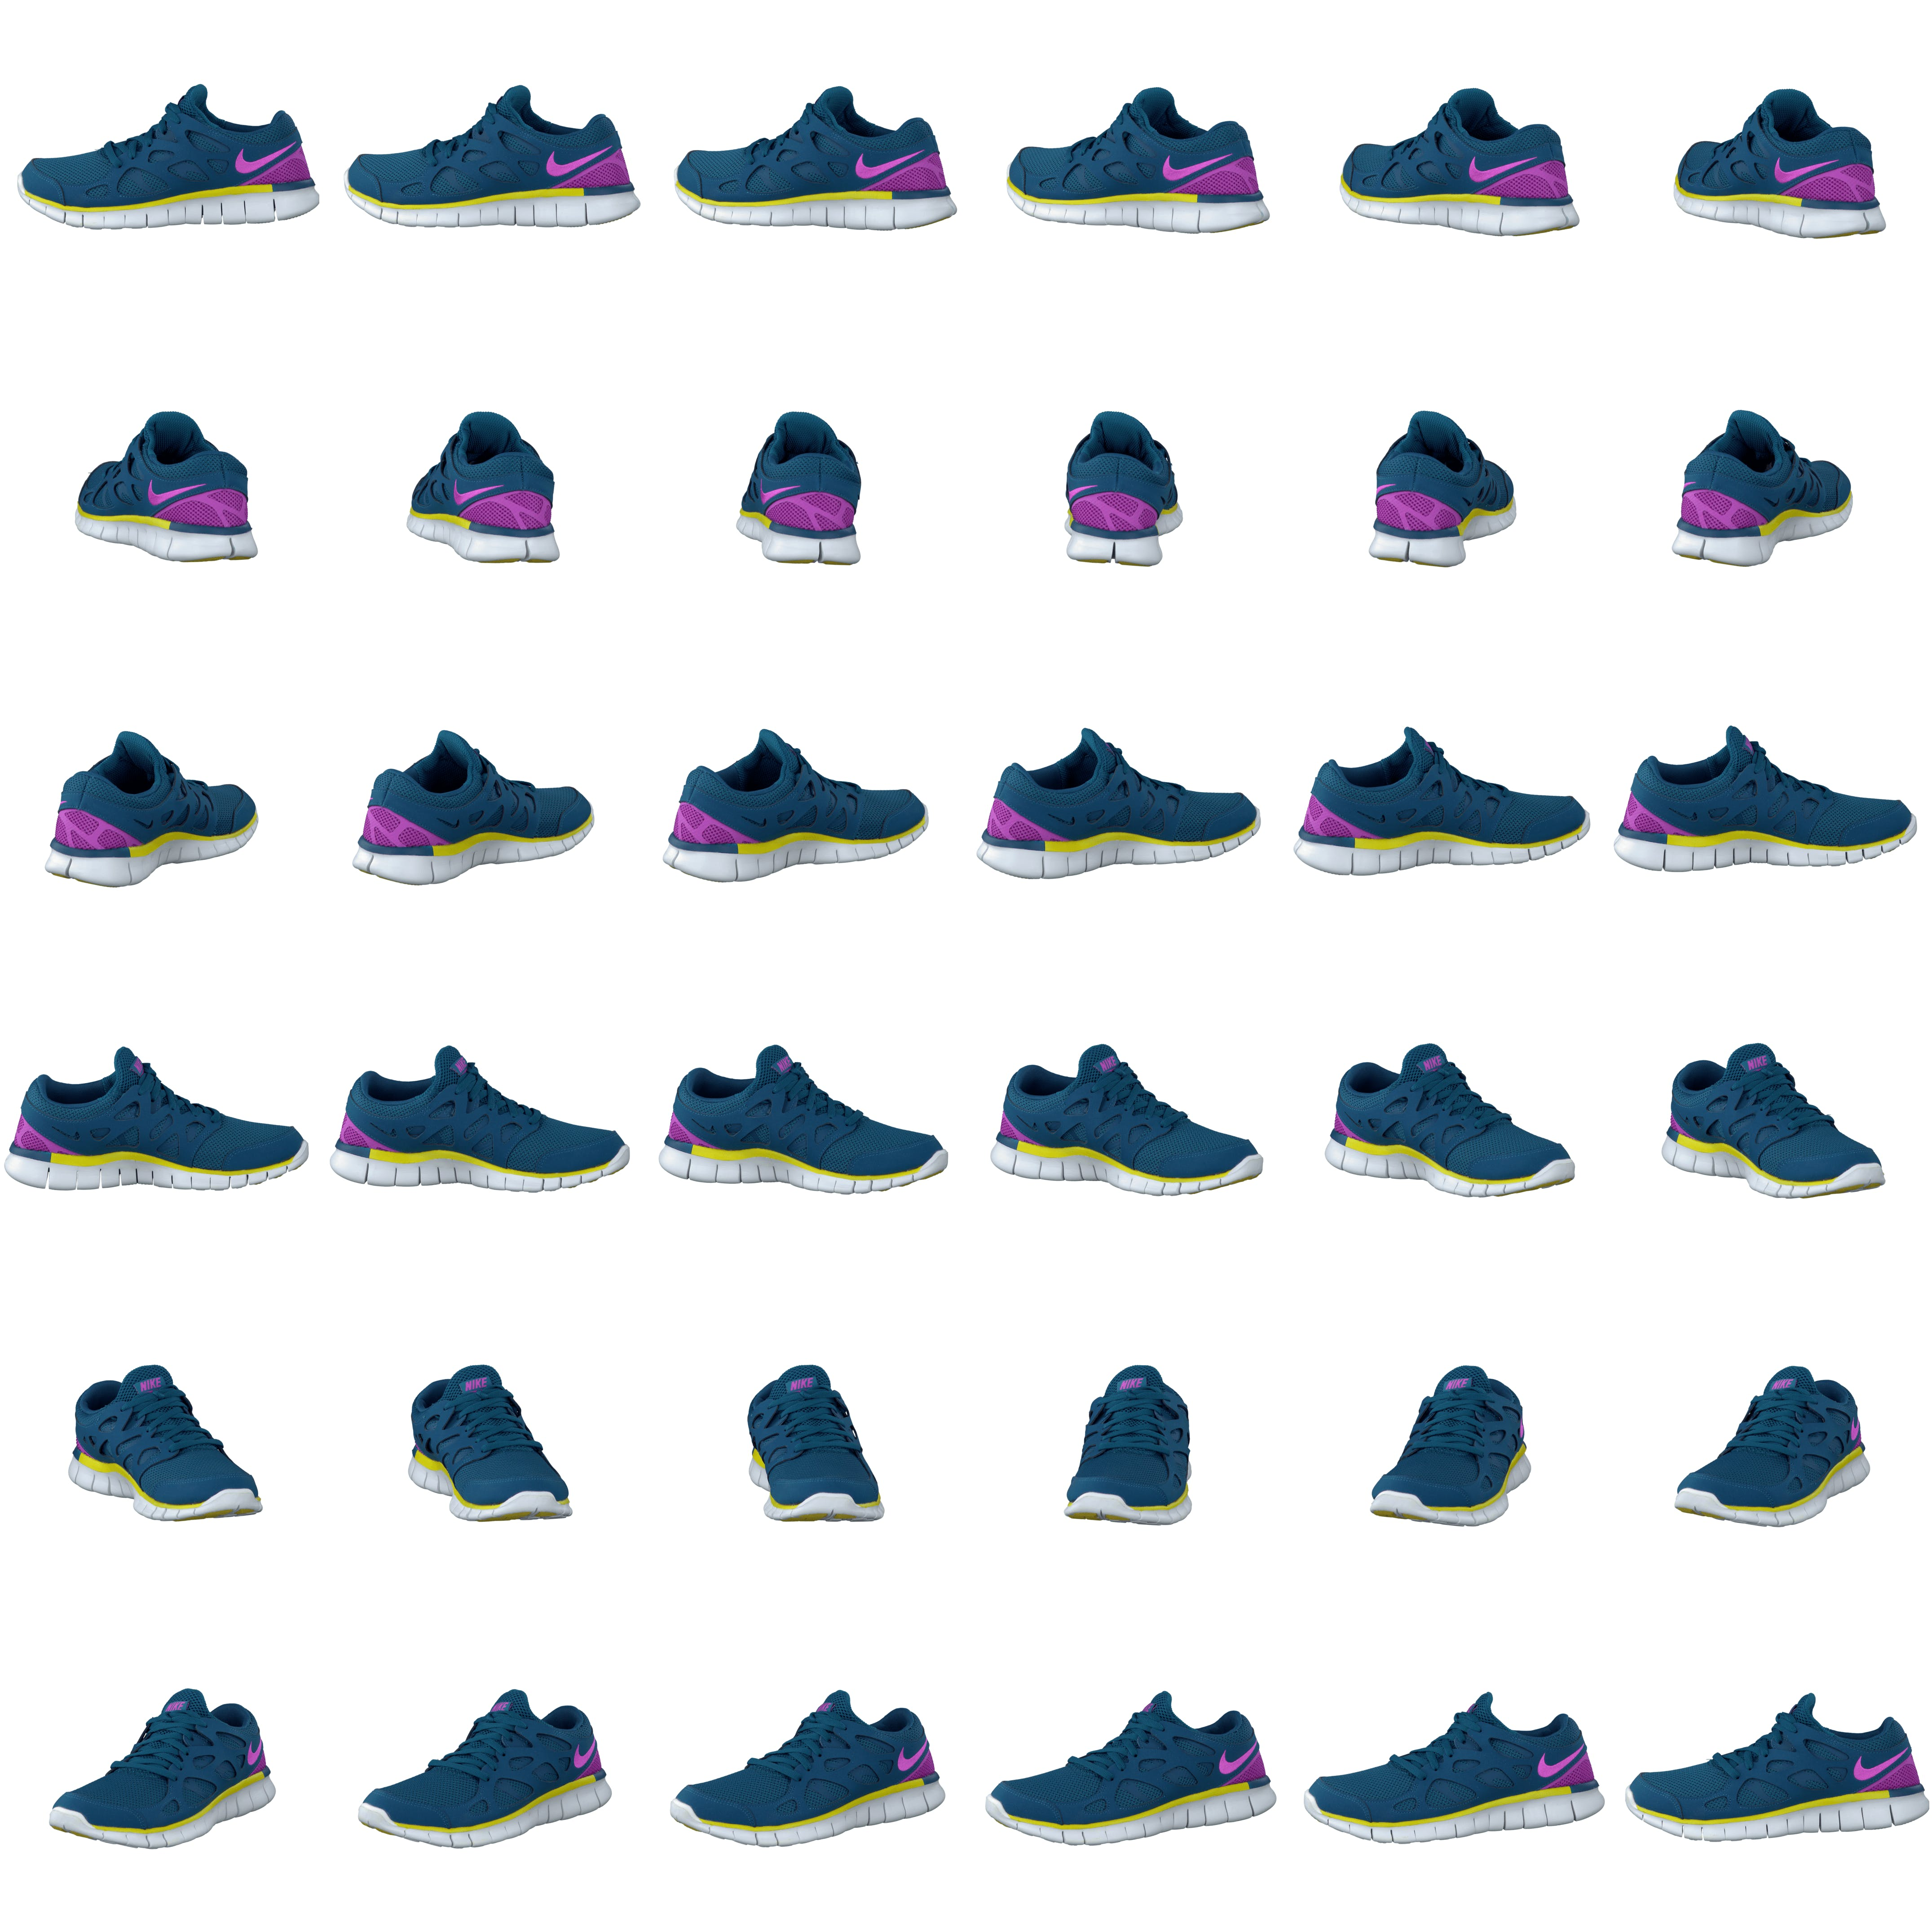 Buy Nike Wmns Nike Free Run 2 Ext Grn AbyssRd Vlt Brght